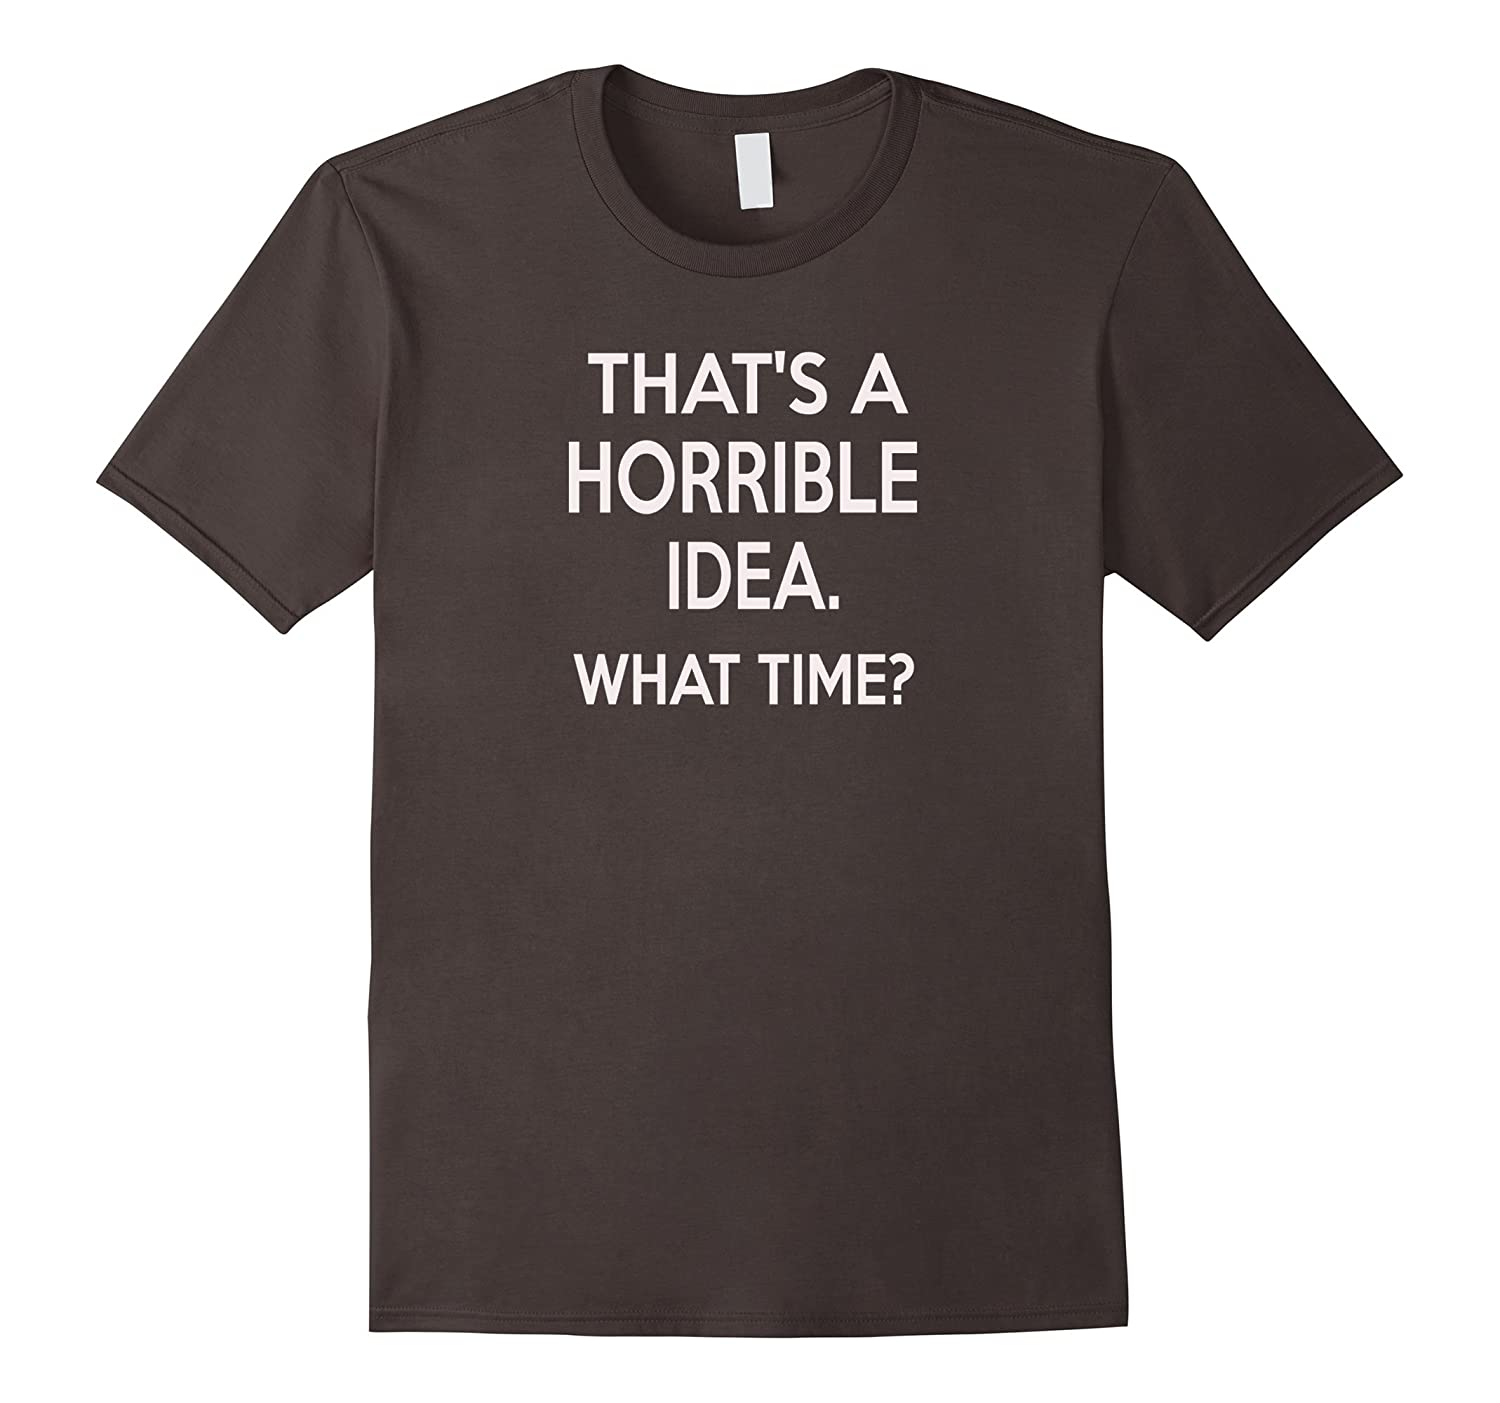 thats a horrible idea what time t shirt funny-RT